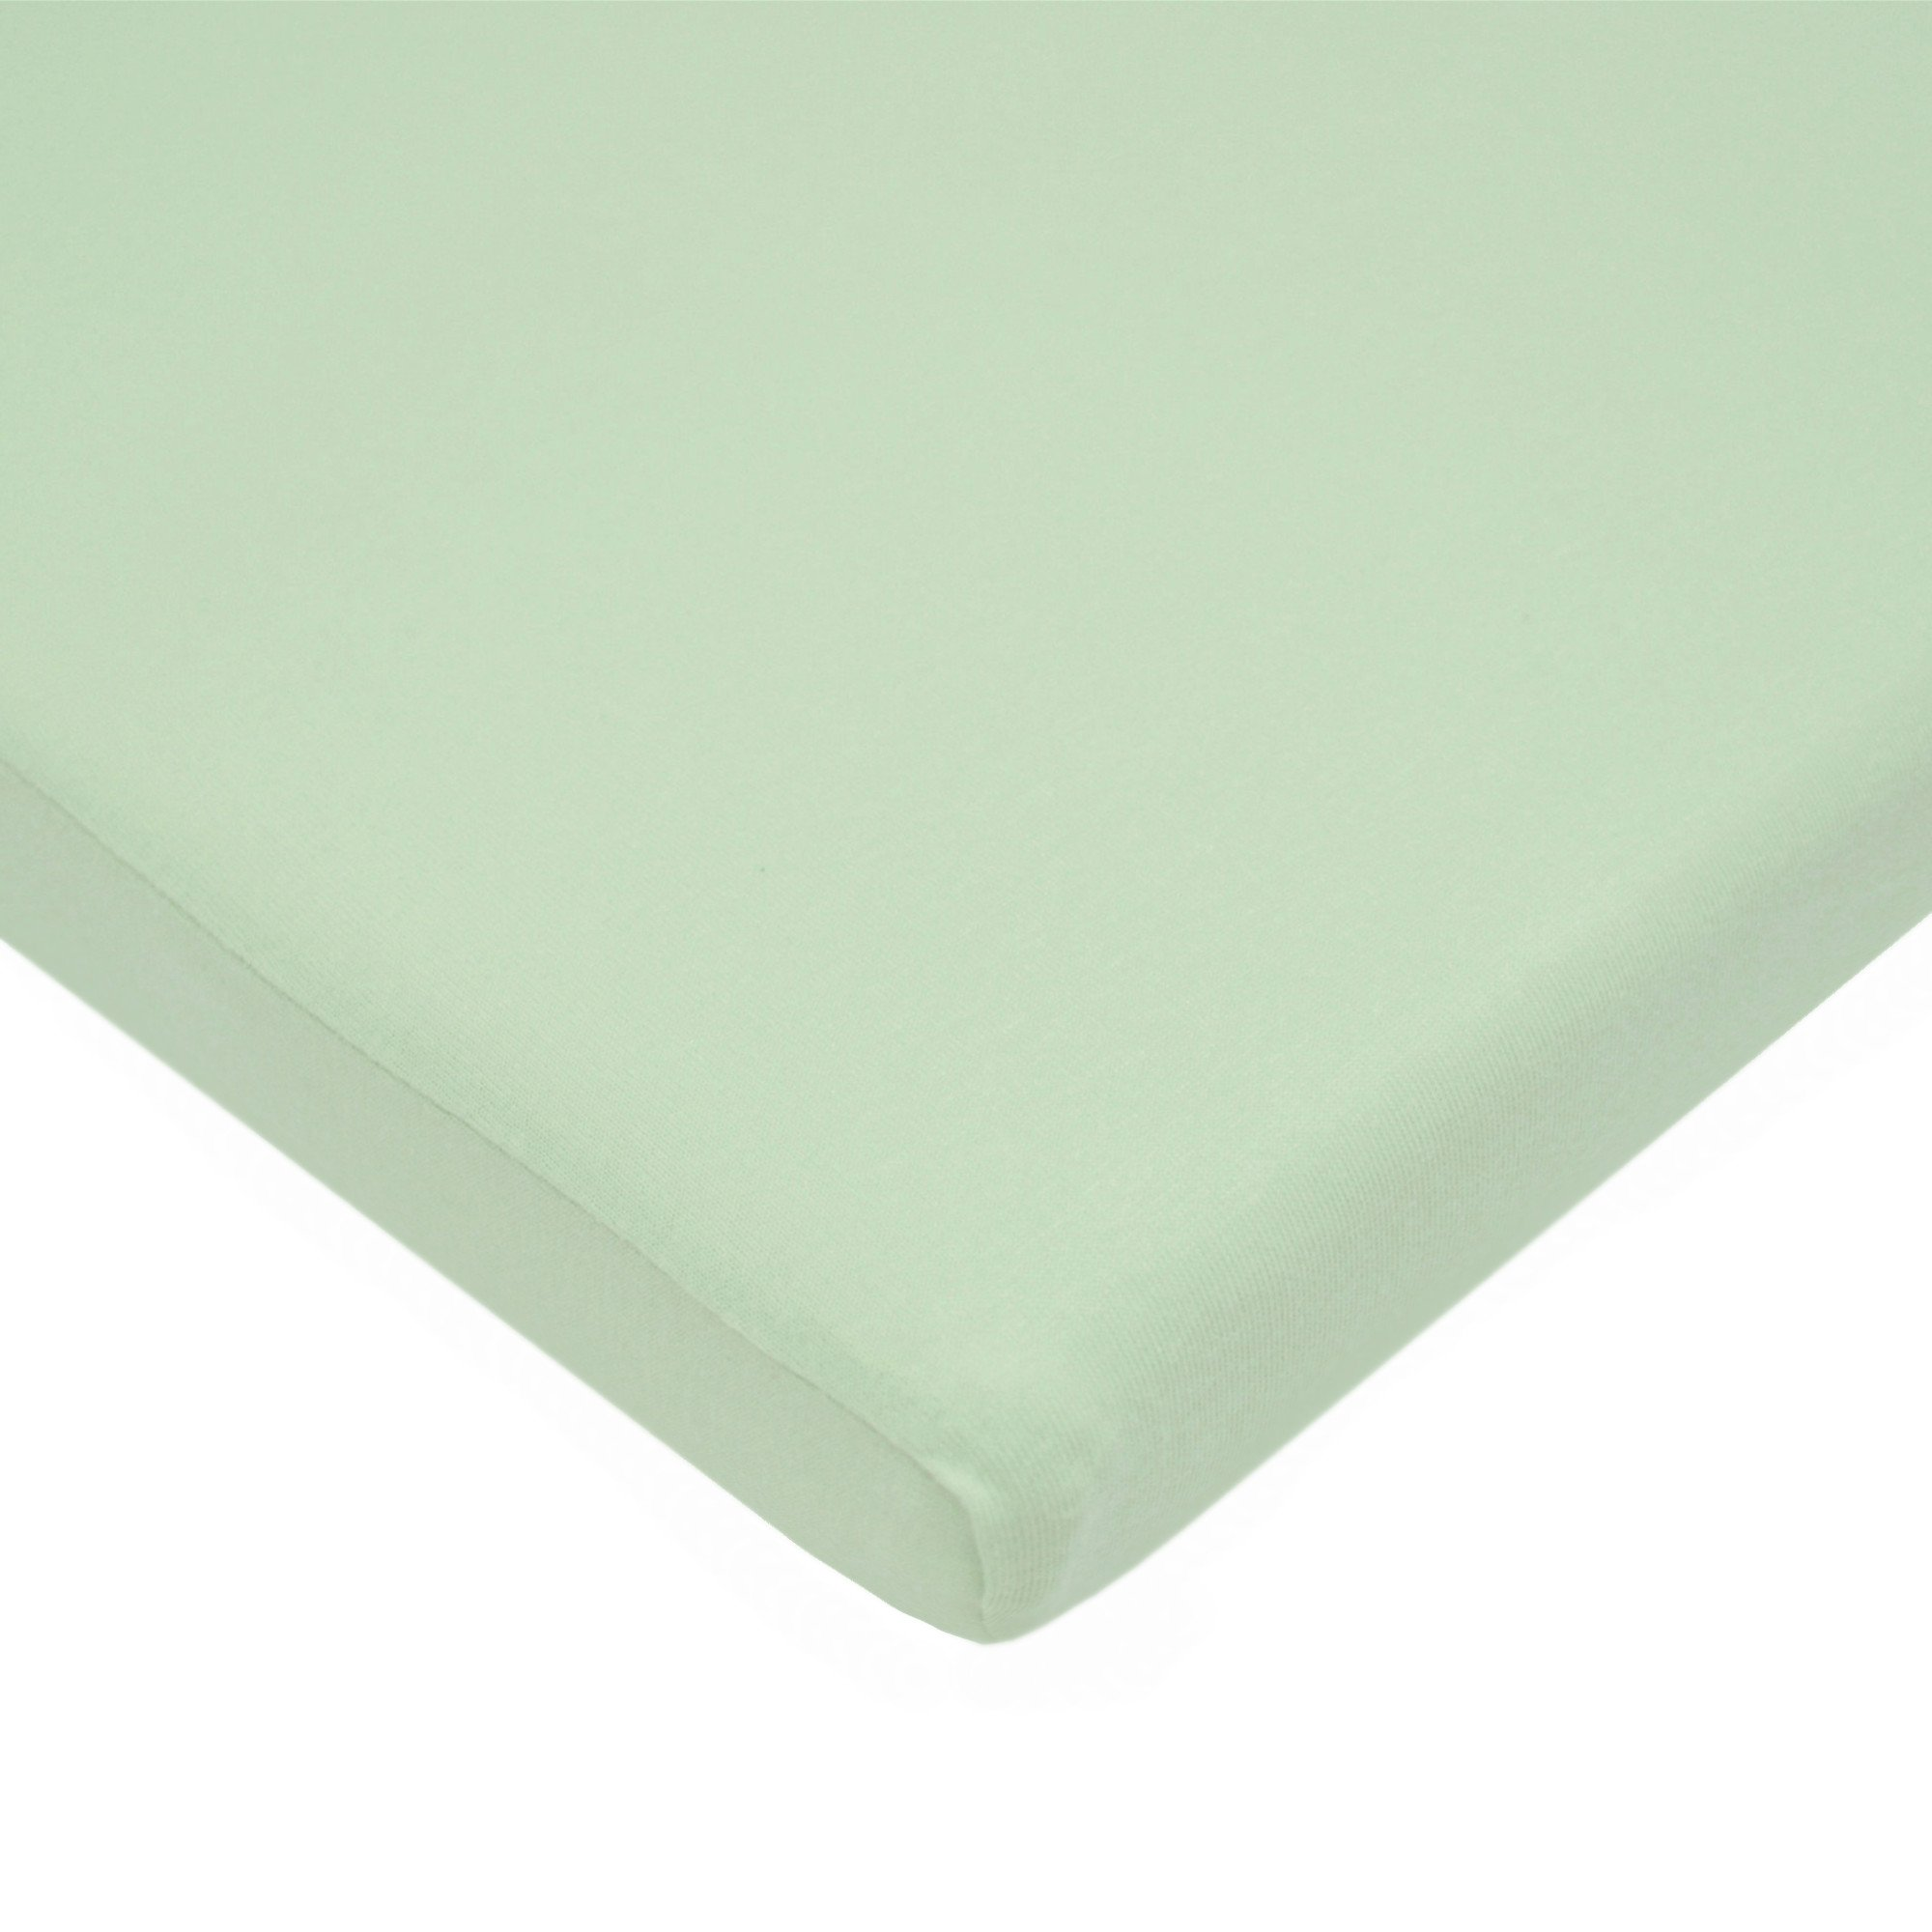 TL Care 100% Natural Cotton Value Jersey Knit Fitted Bassinet Sheet, Celery, Soft Breathable, for Boys and Girls